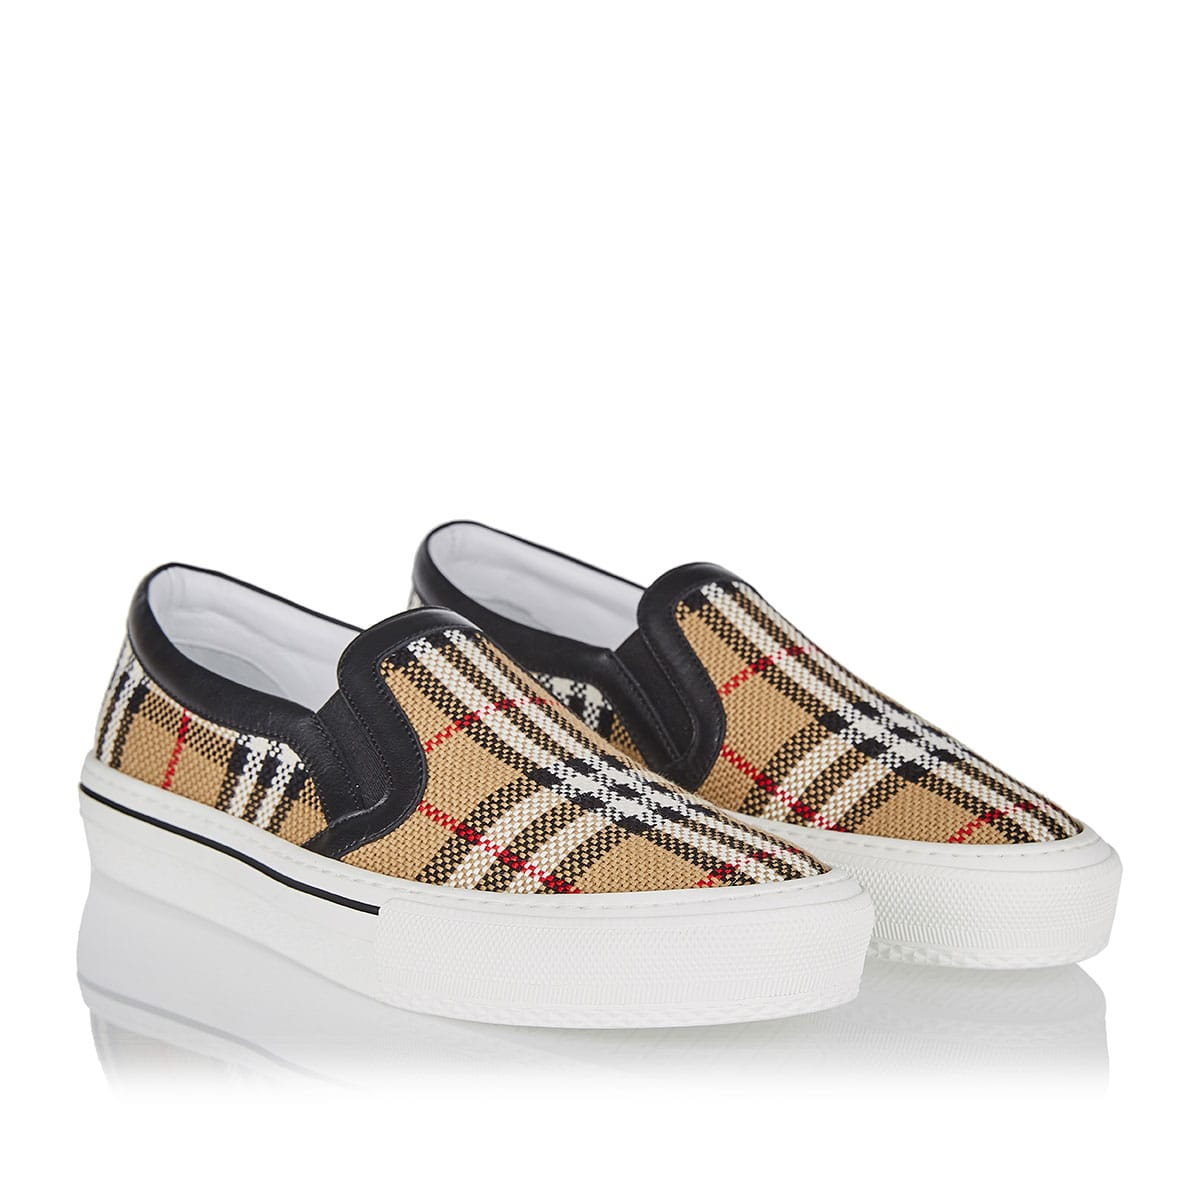 Vintage Check slip-on sneaker